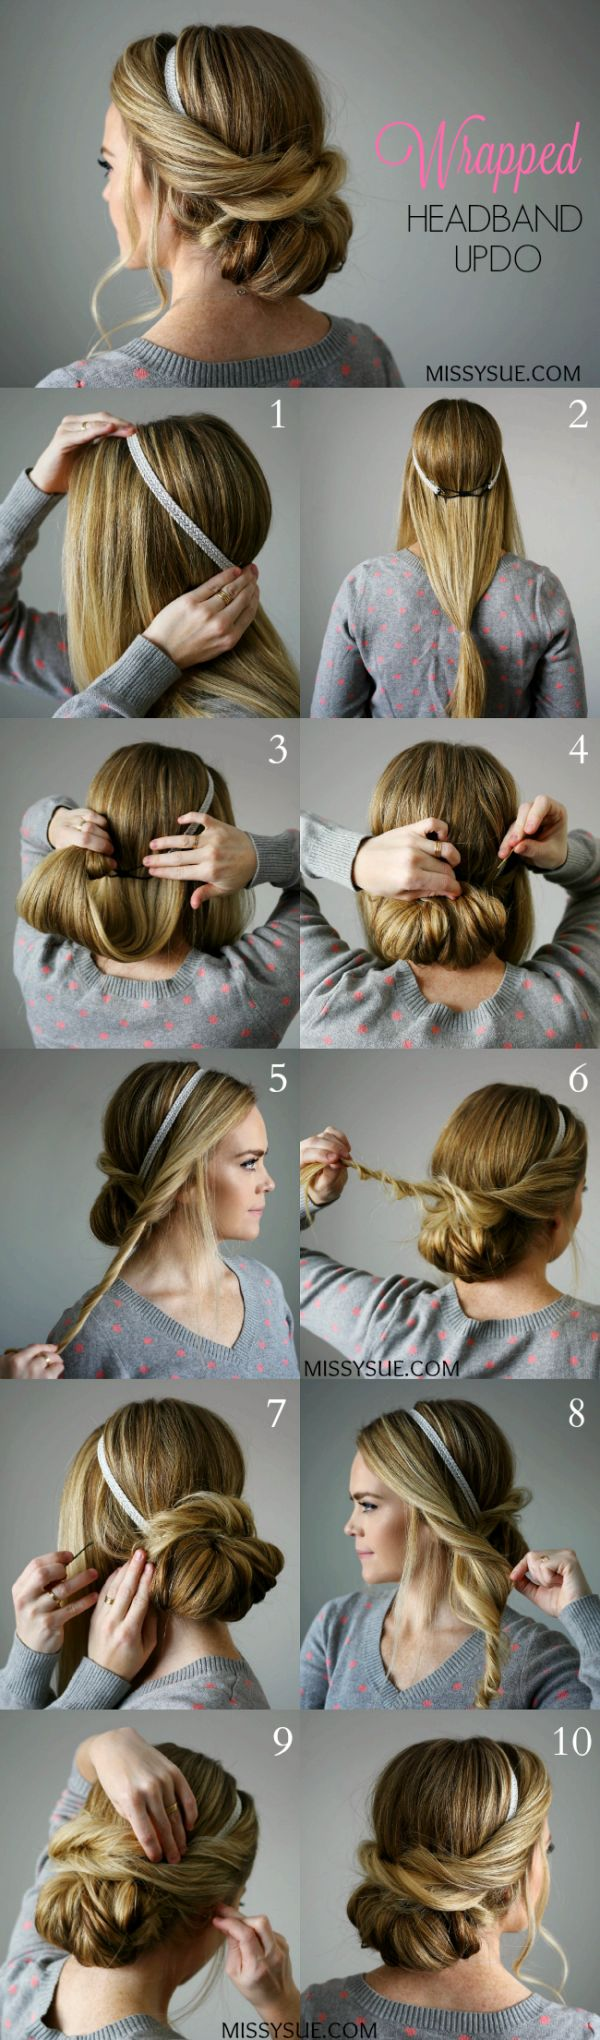 best pretty hair images on pinterest hair ideas hairstyle